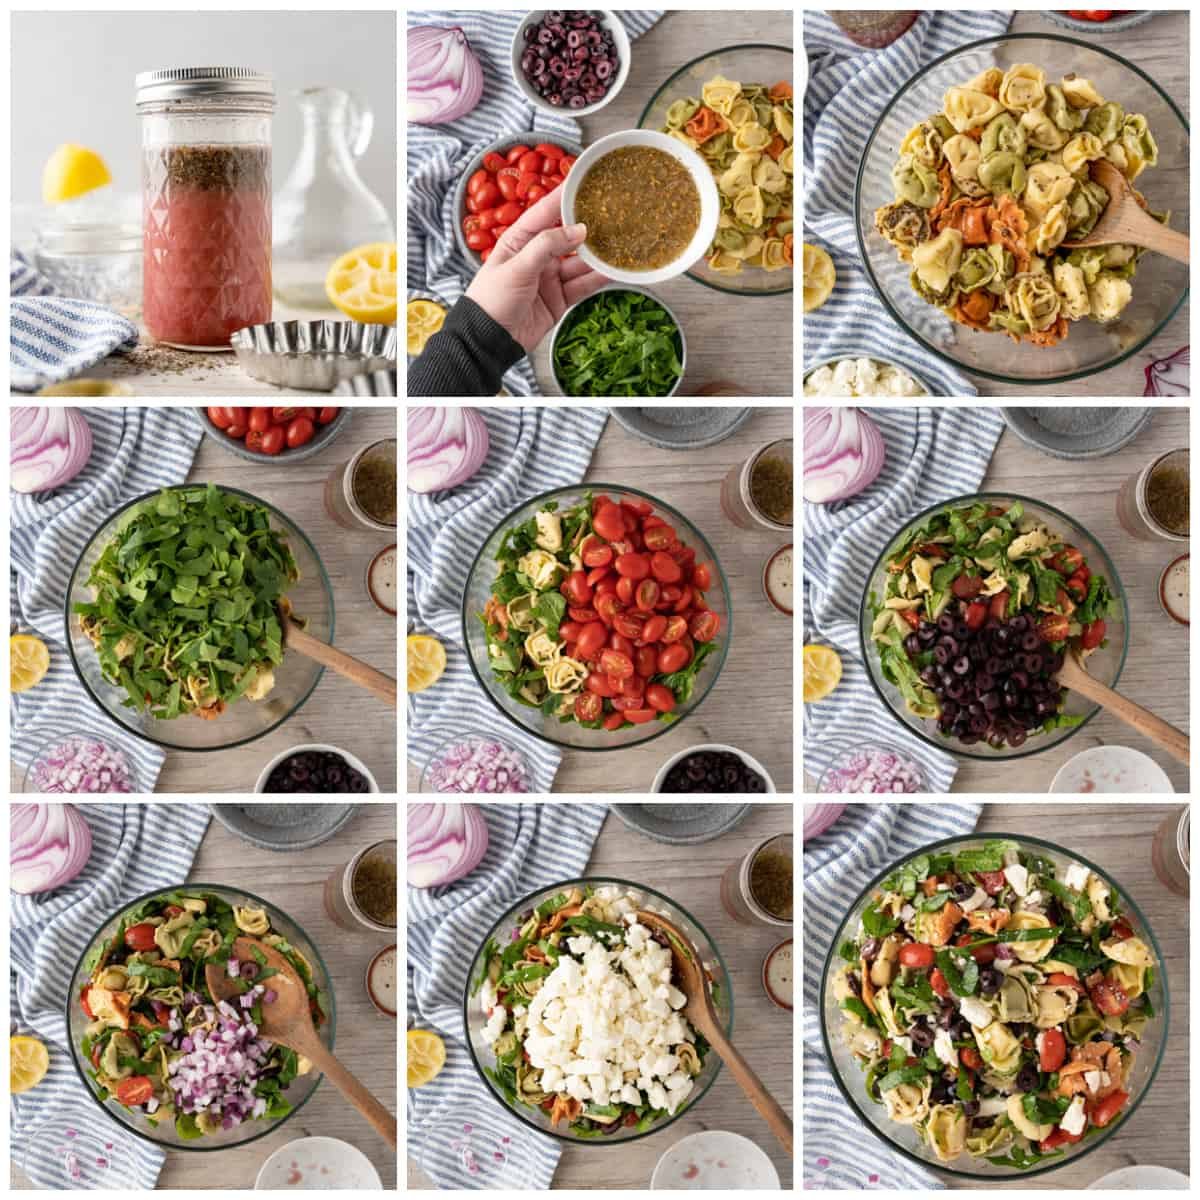 Step by step photos on how to make Greek Pasta Salad